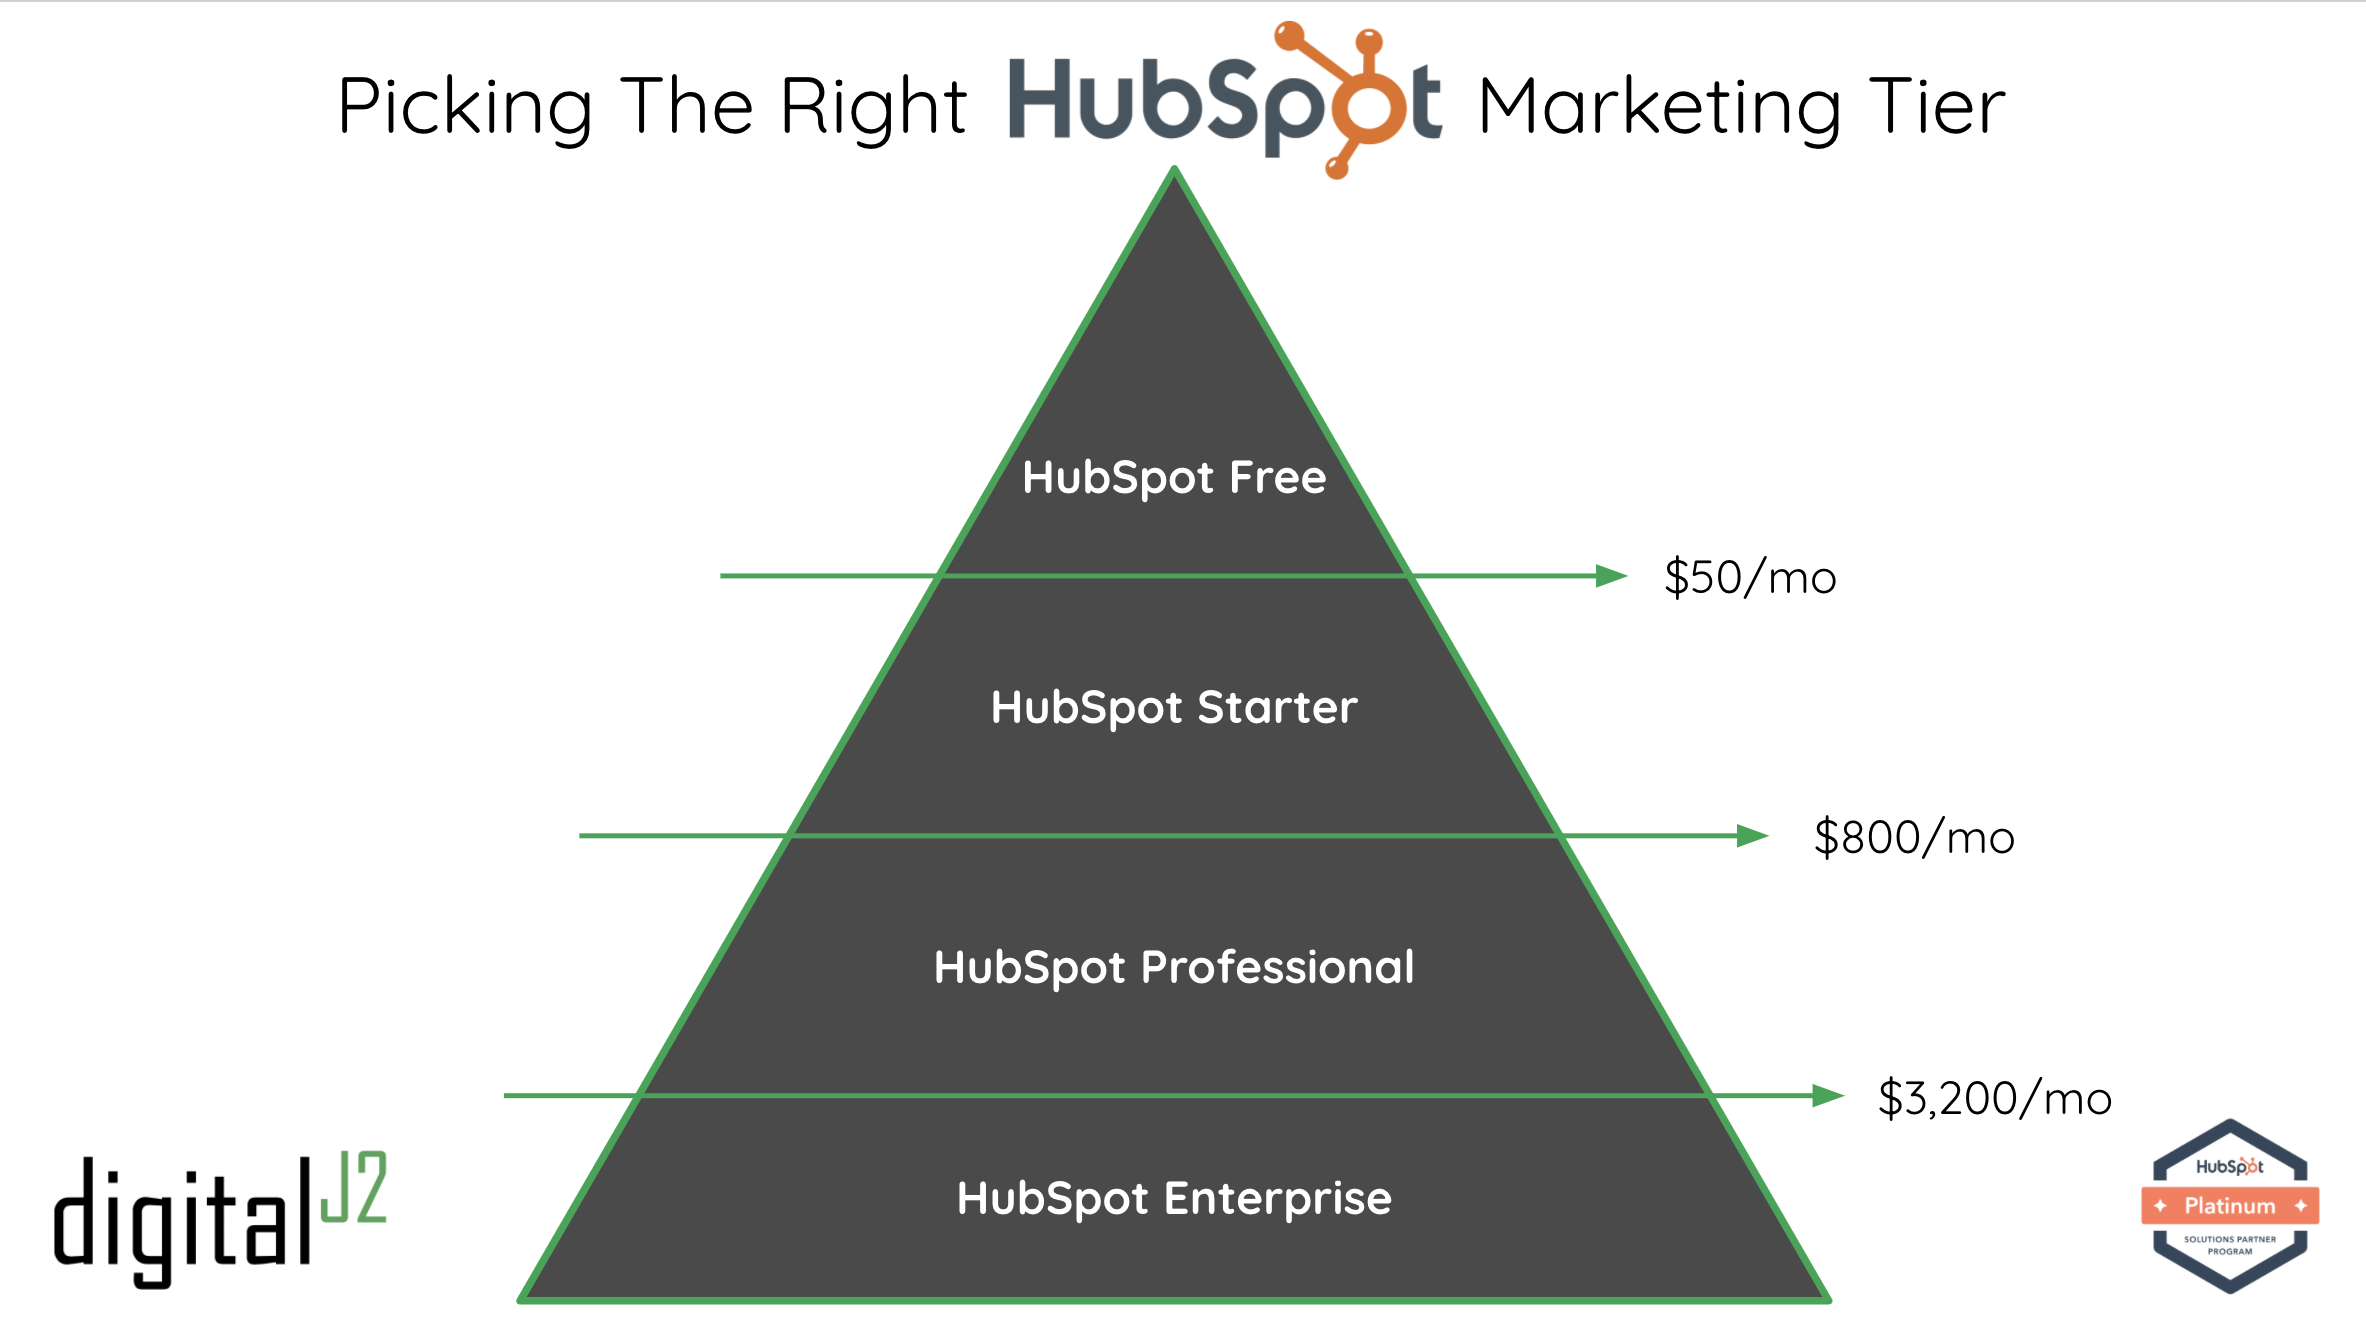 The HubSpot Marketing Tier Comparison That Will Help You Choose the Right Plan